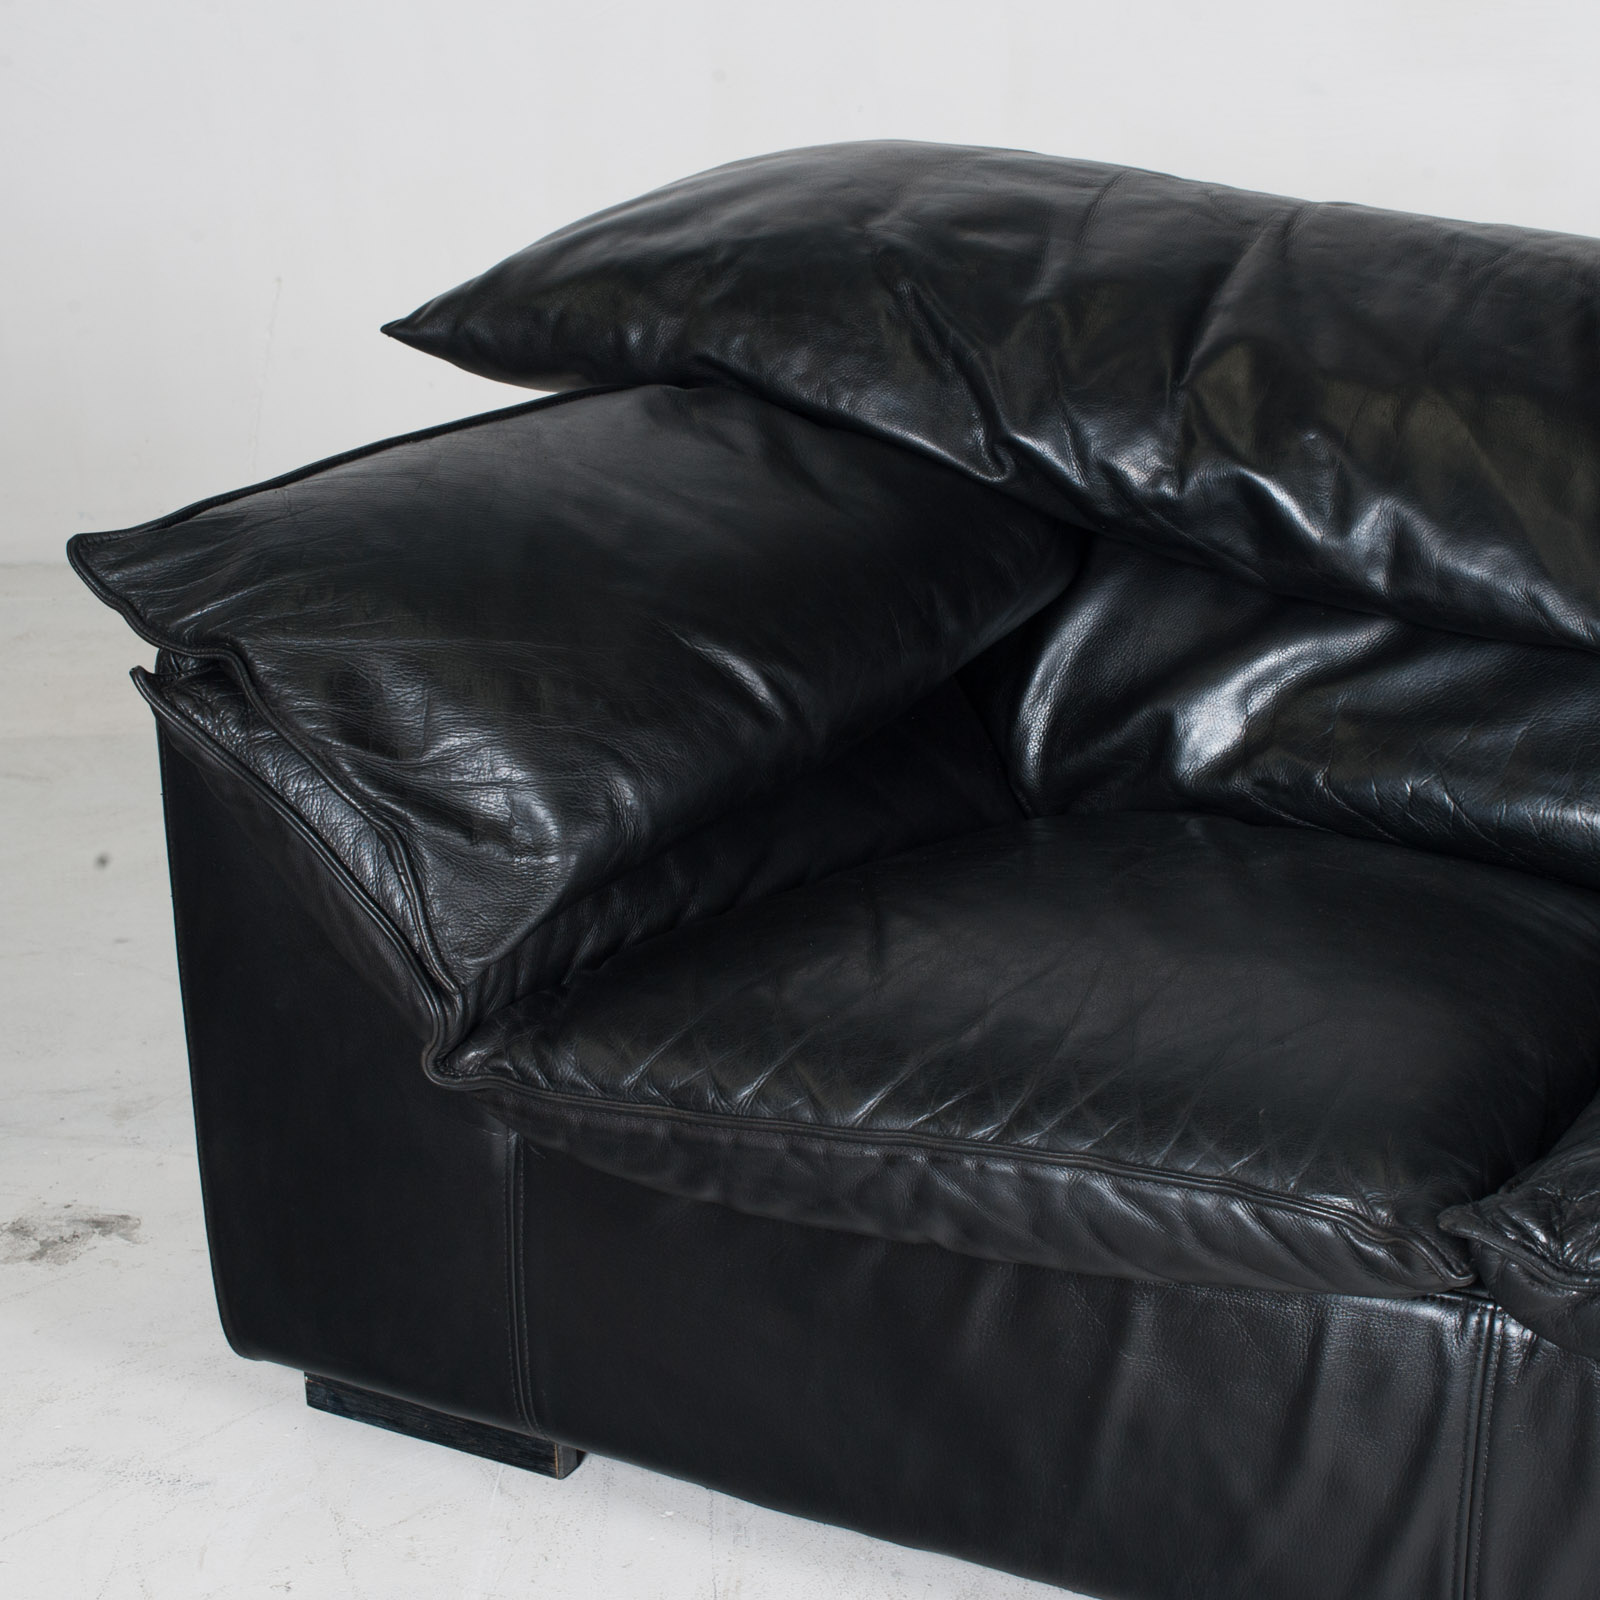 Model Monza 3 Seat Sofa By Eilerson In Black Leather 1970s Denmark 05